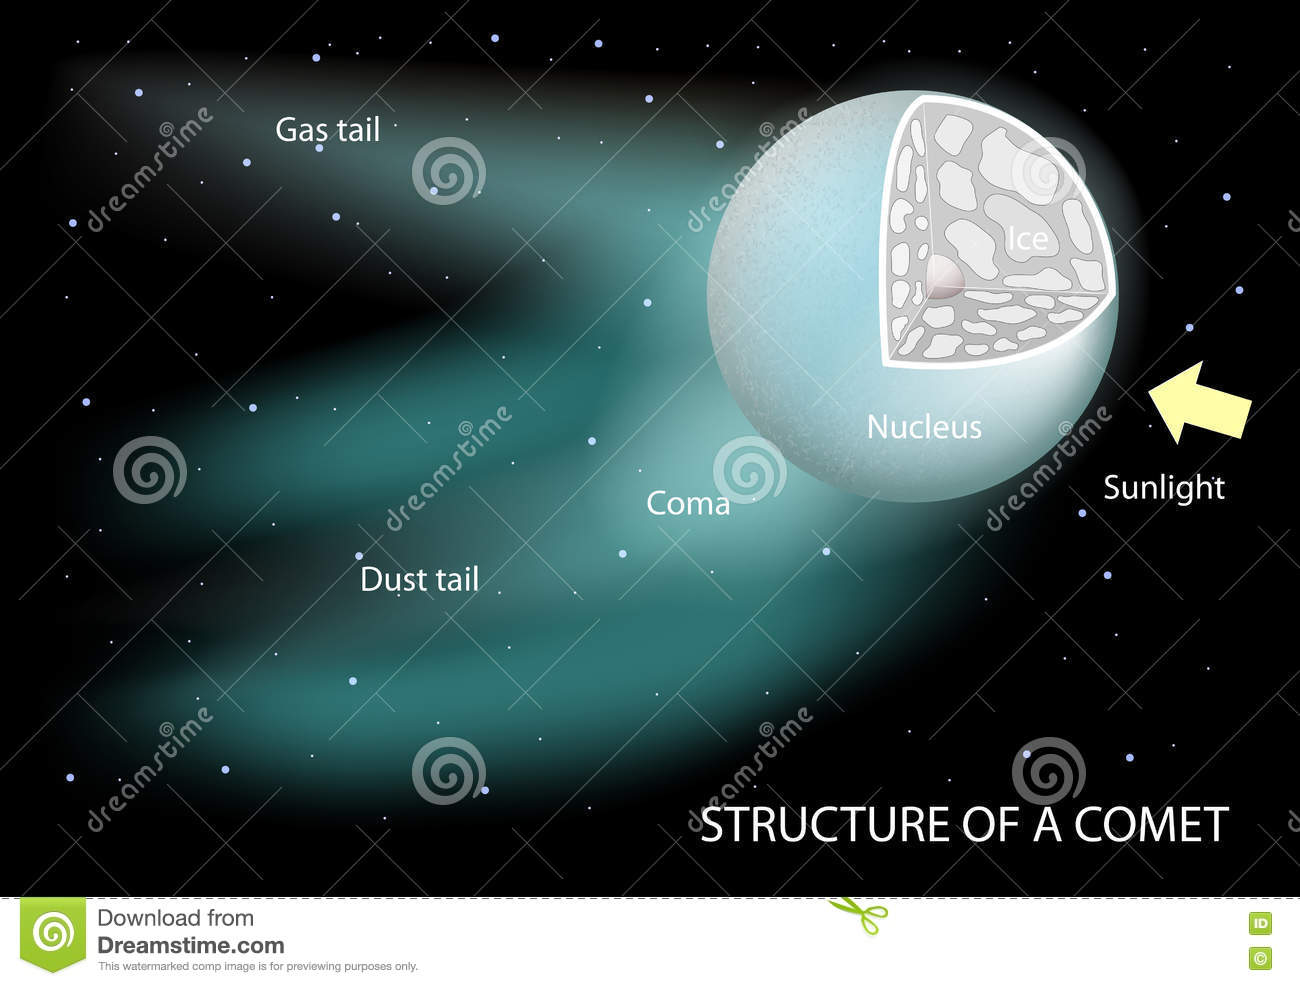 Structure of a comet stock vector. Illustration of ...